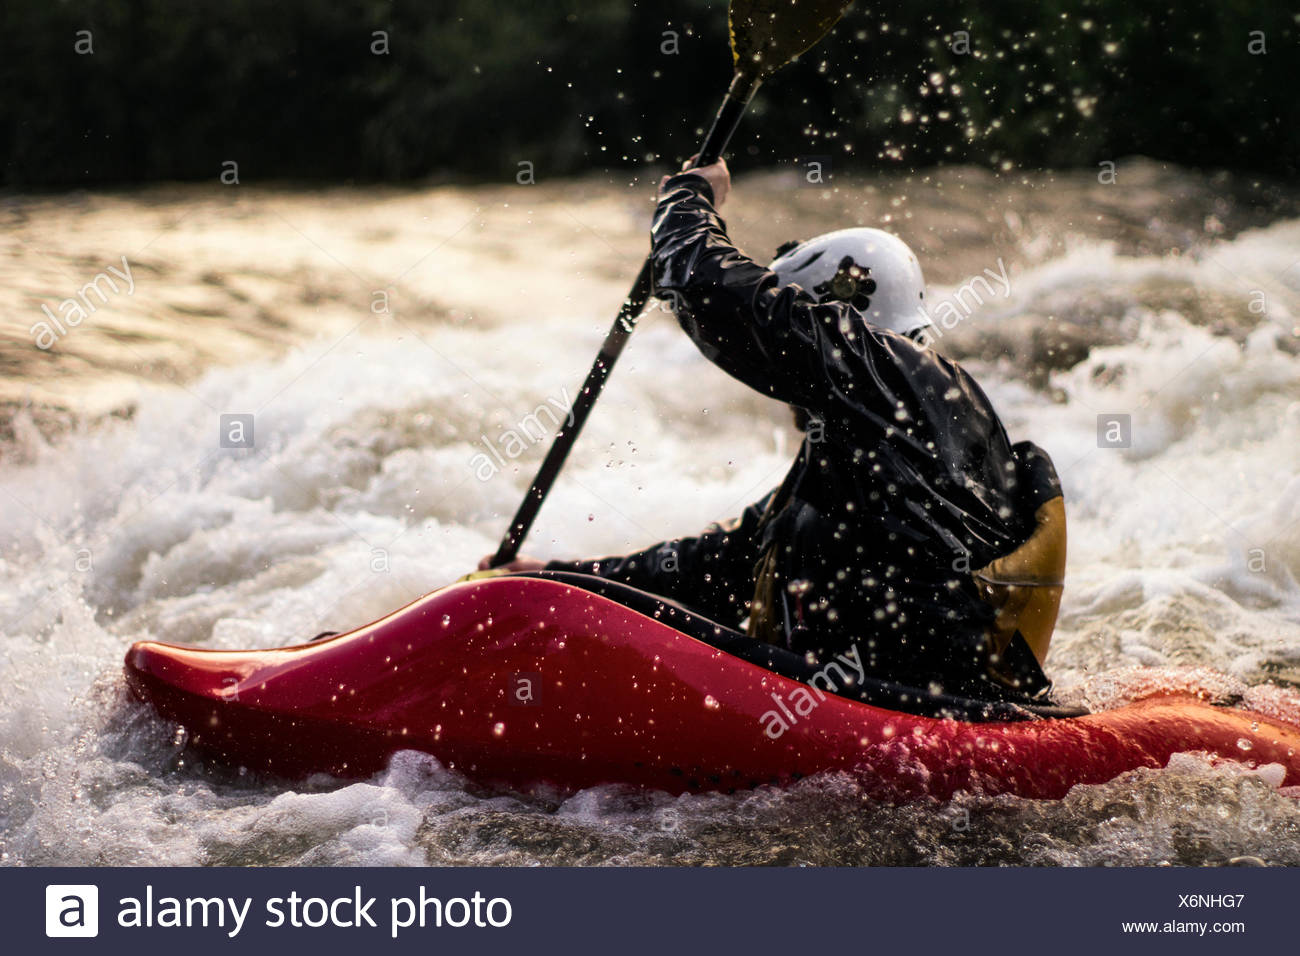 USA, Colorado, Clear Creek, Close-up shot of man kayaking in white water - Stock Image